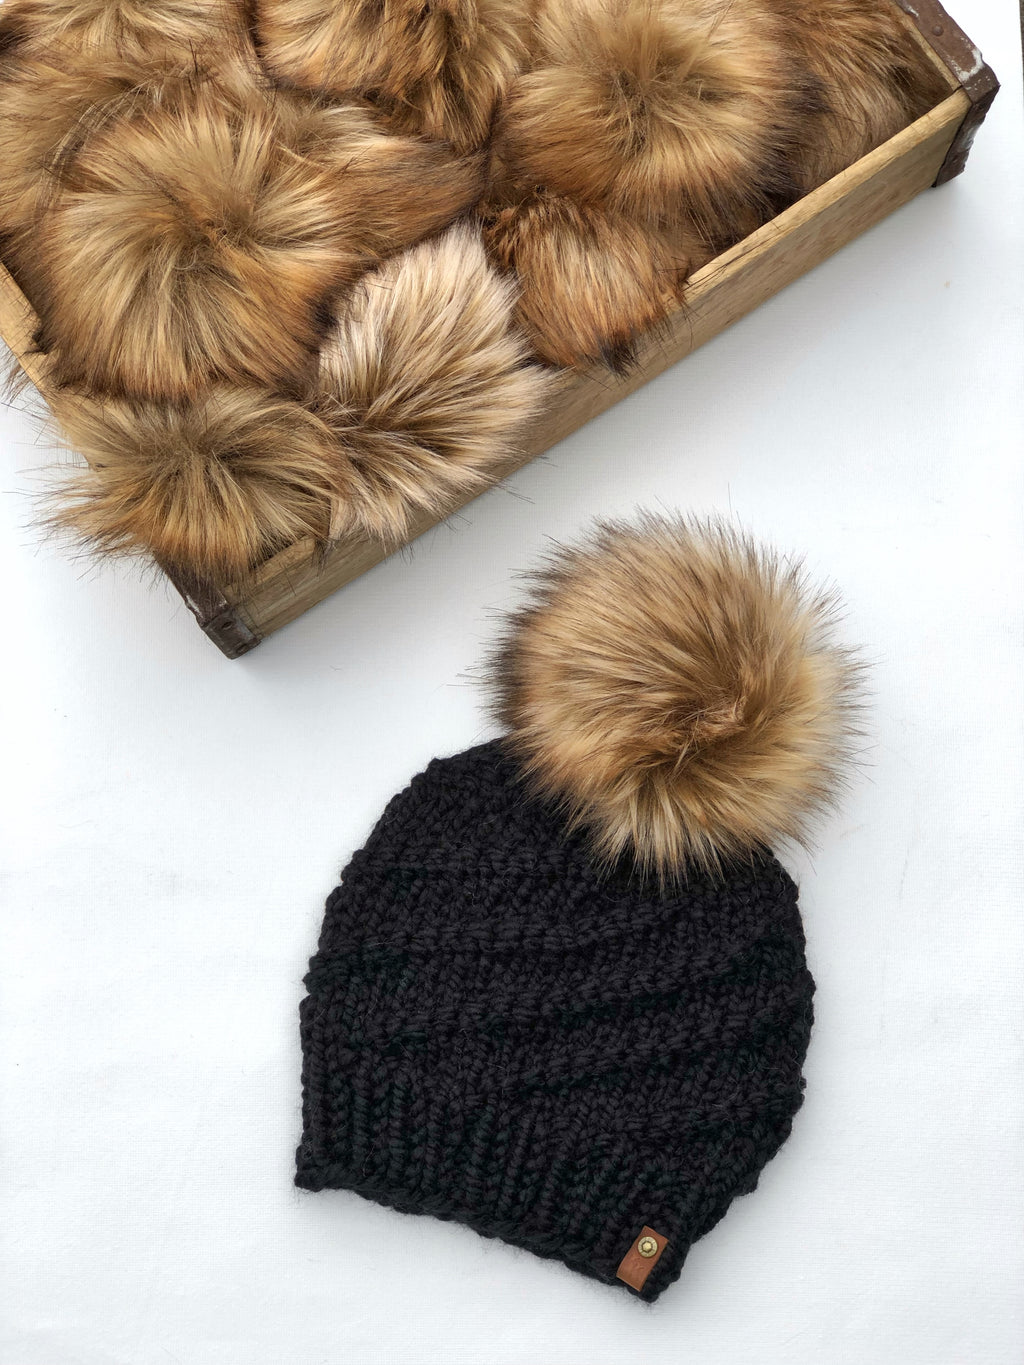 Black Hand Knit Cyclone Beanie Wool Blend Toasted Marshmallow Faux Fur Pom Hat - KitchenKlutter